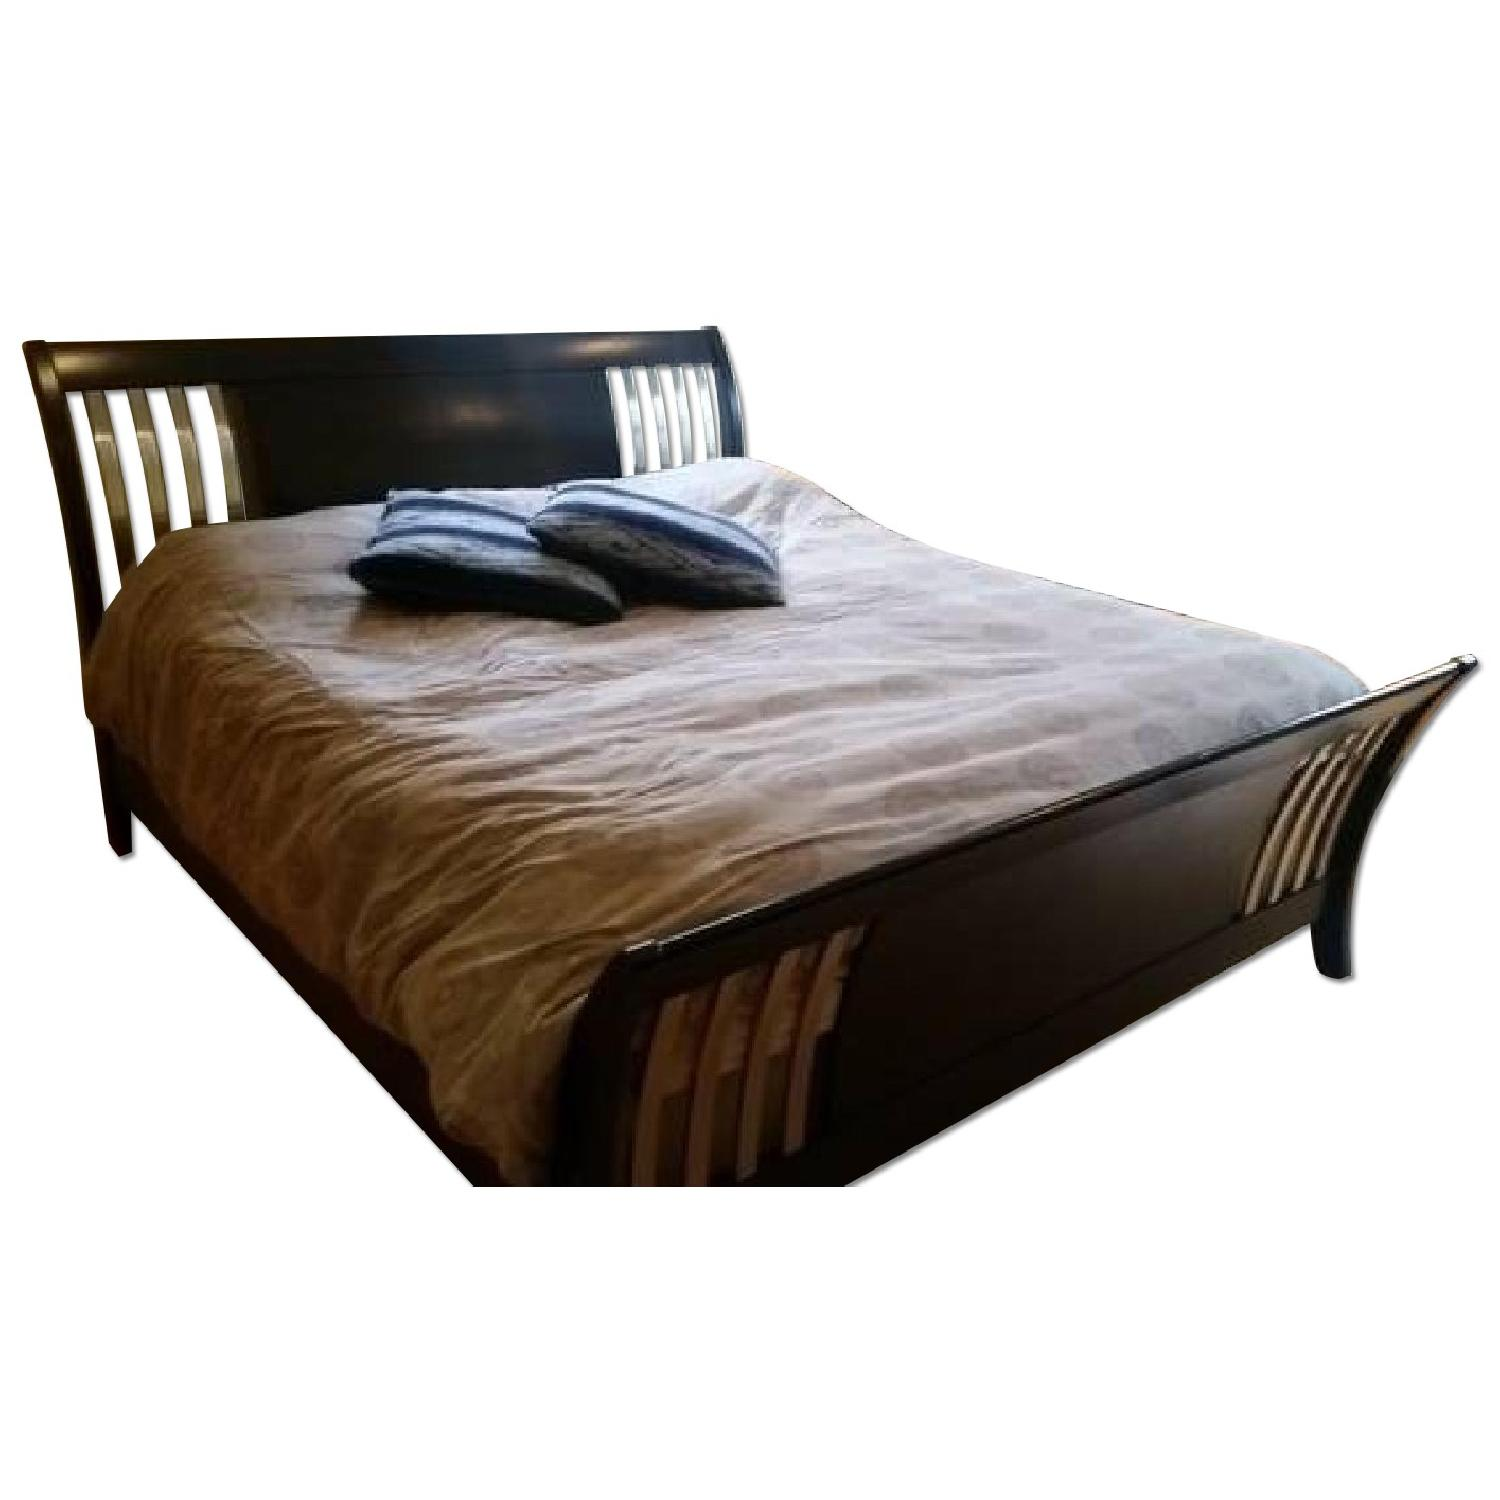 King Size Sleigh Bed Frame - image-0